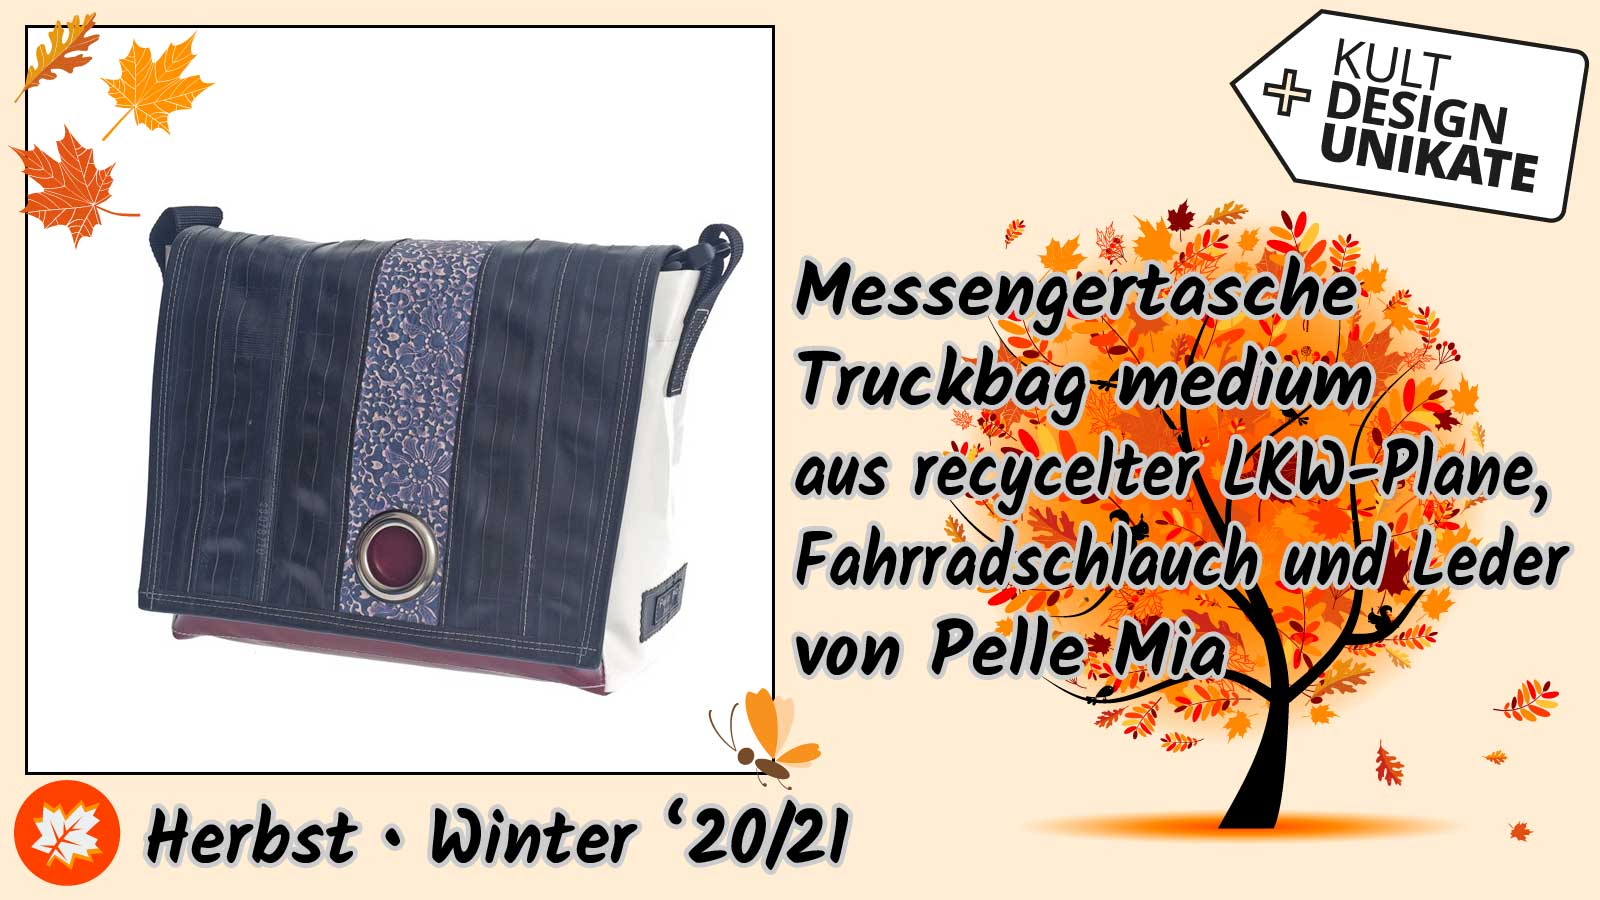 Pelle-Mia-Messengertasche-Truckbag-medium